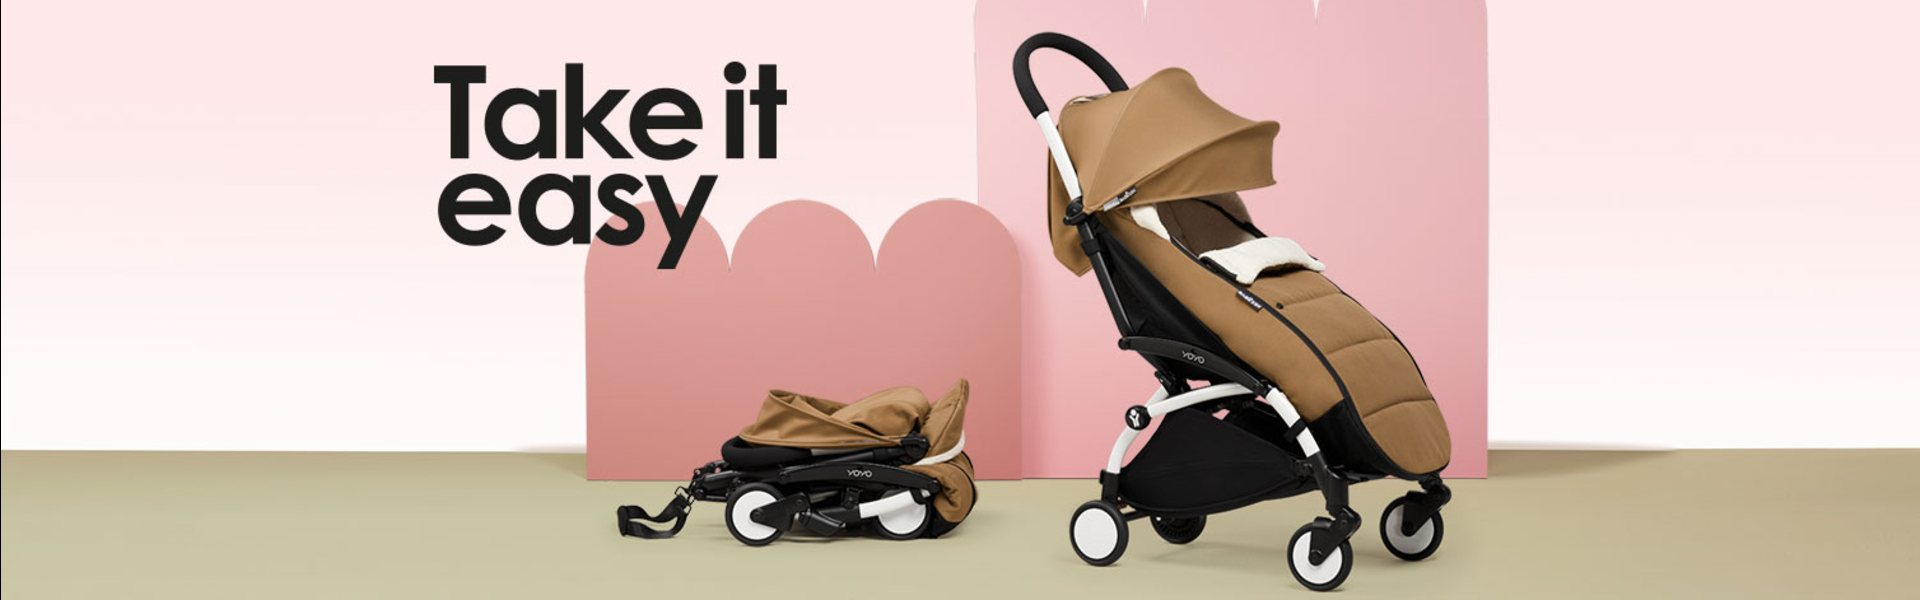 Make your life easier! With a YOYO+ stroller